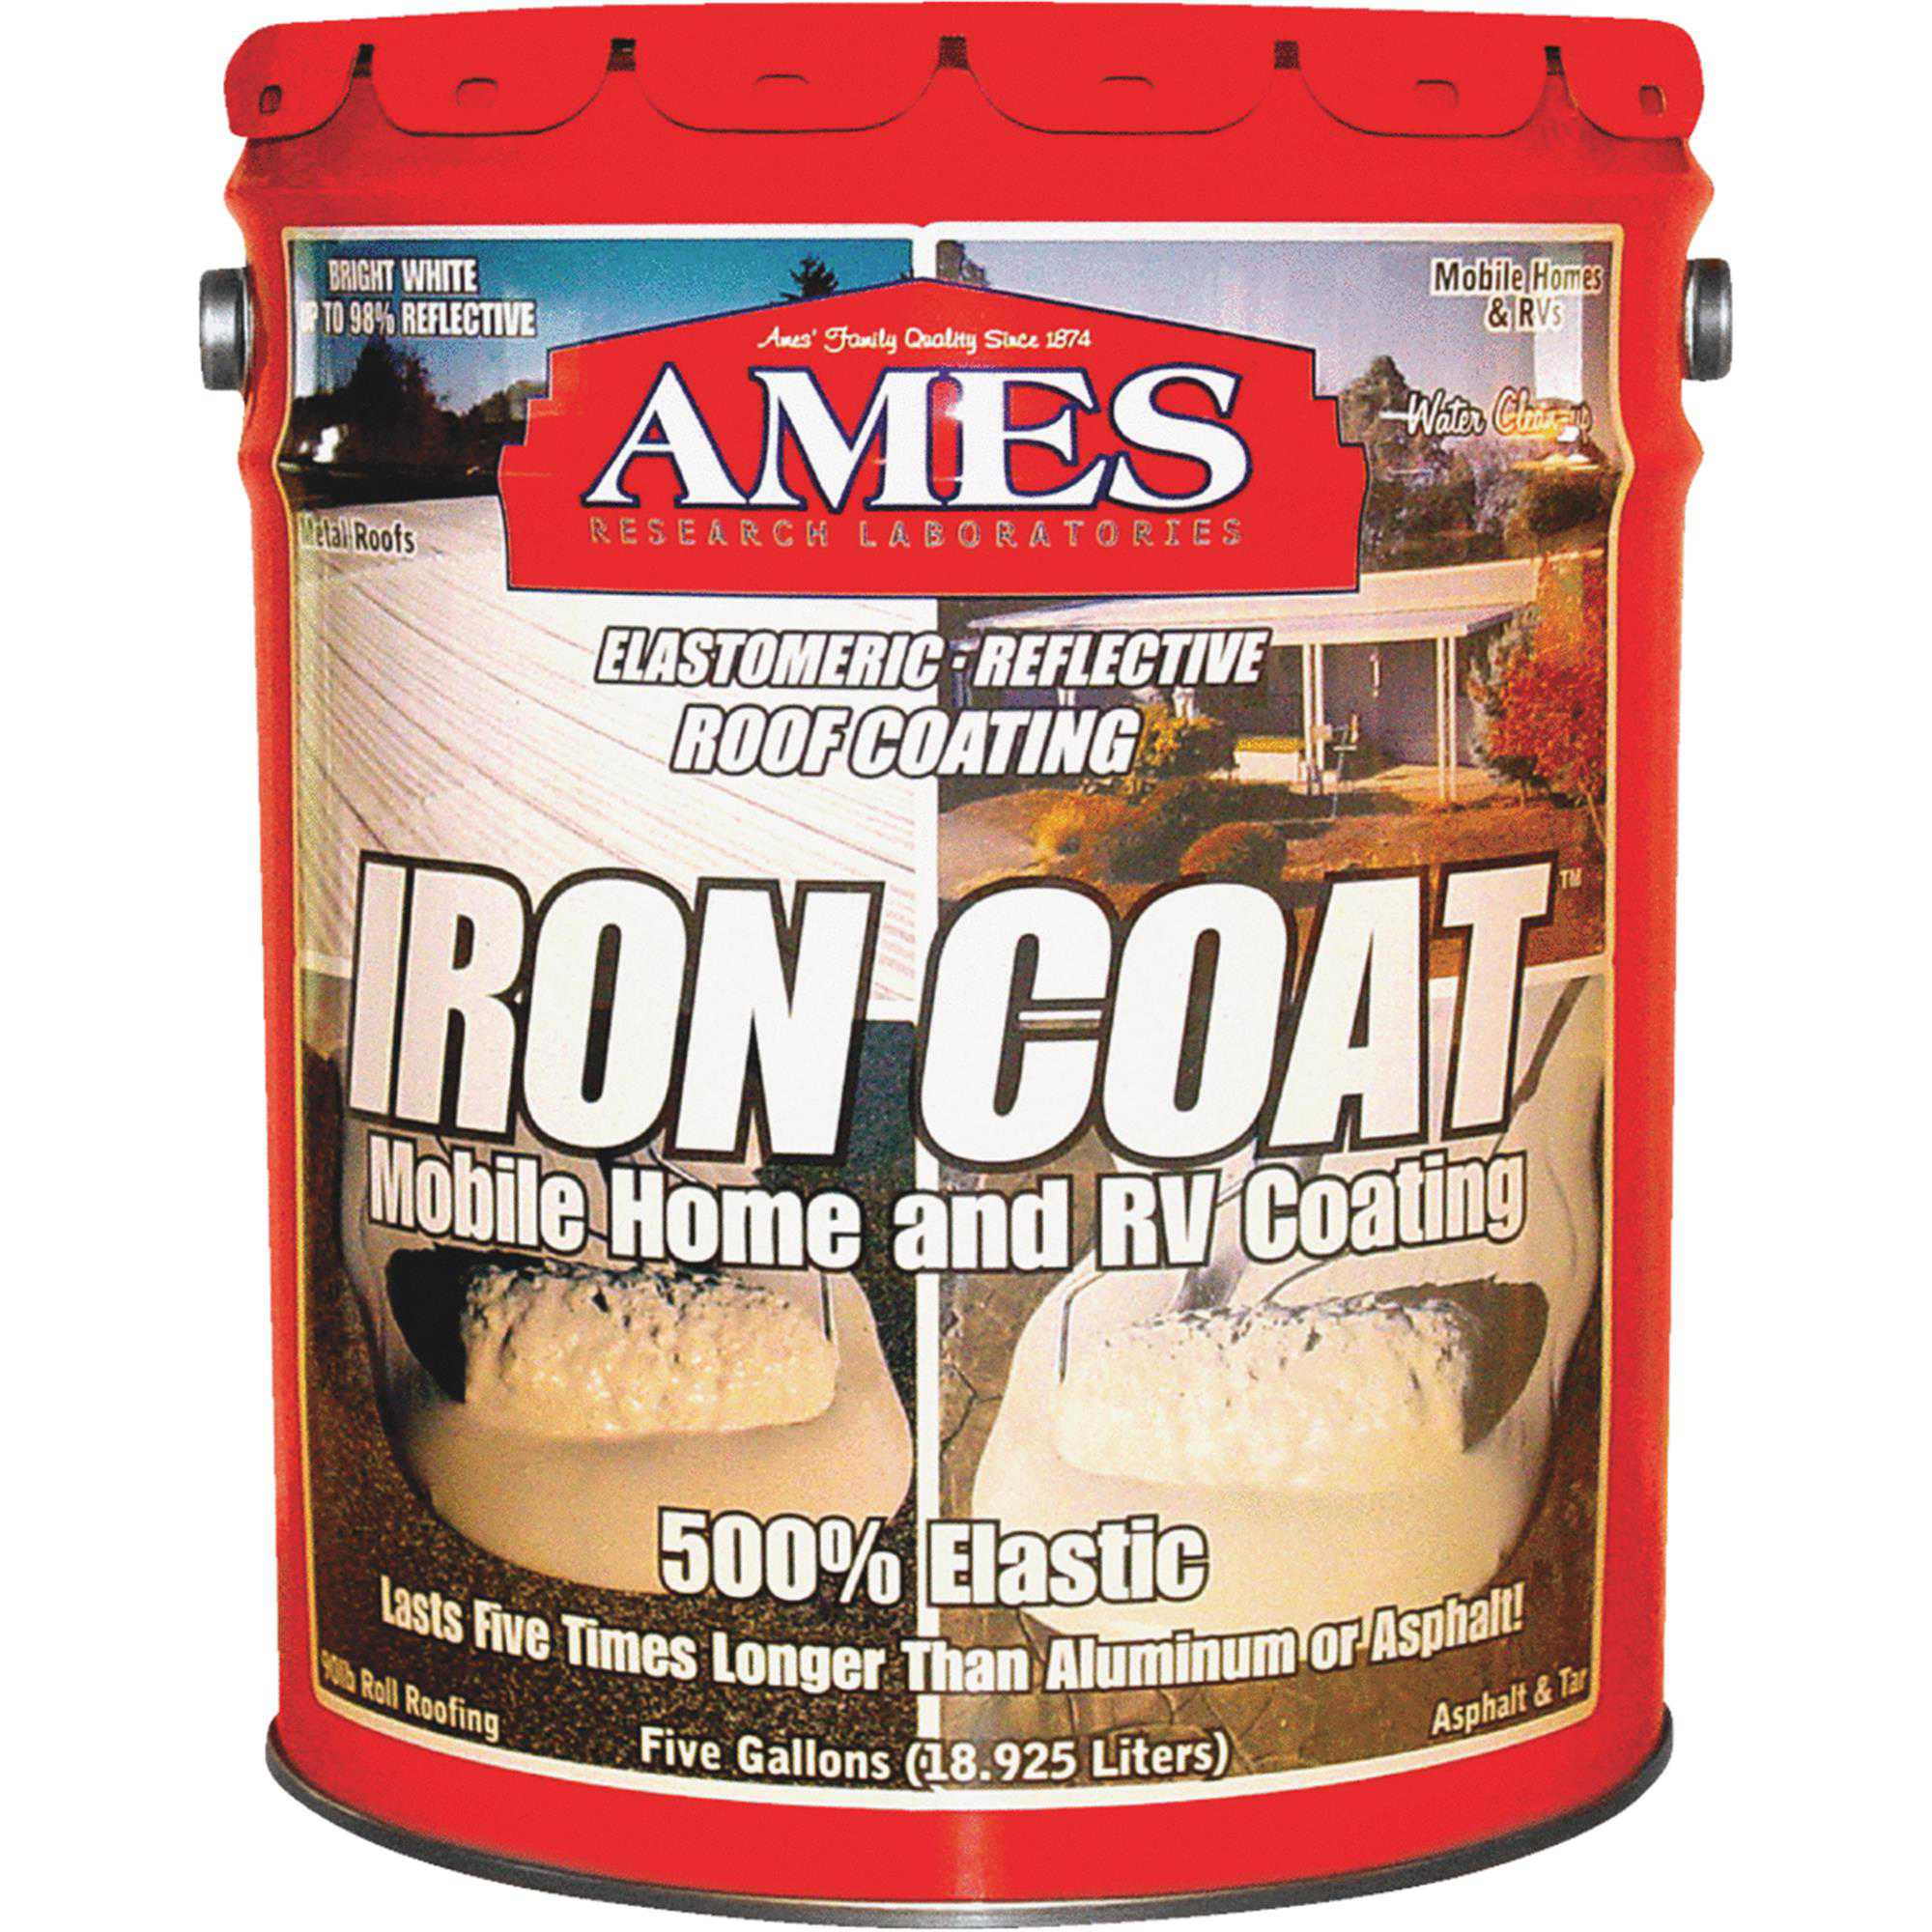 Ames Iron Coat Elastomeric Roof Coating